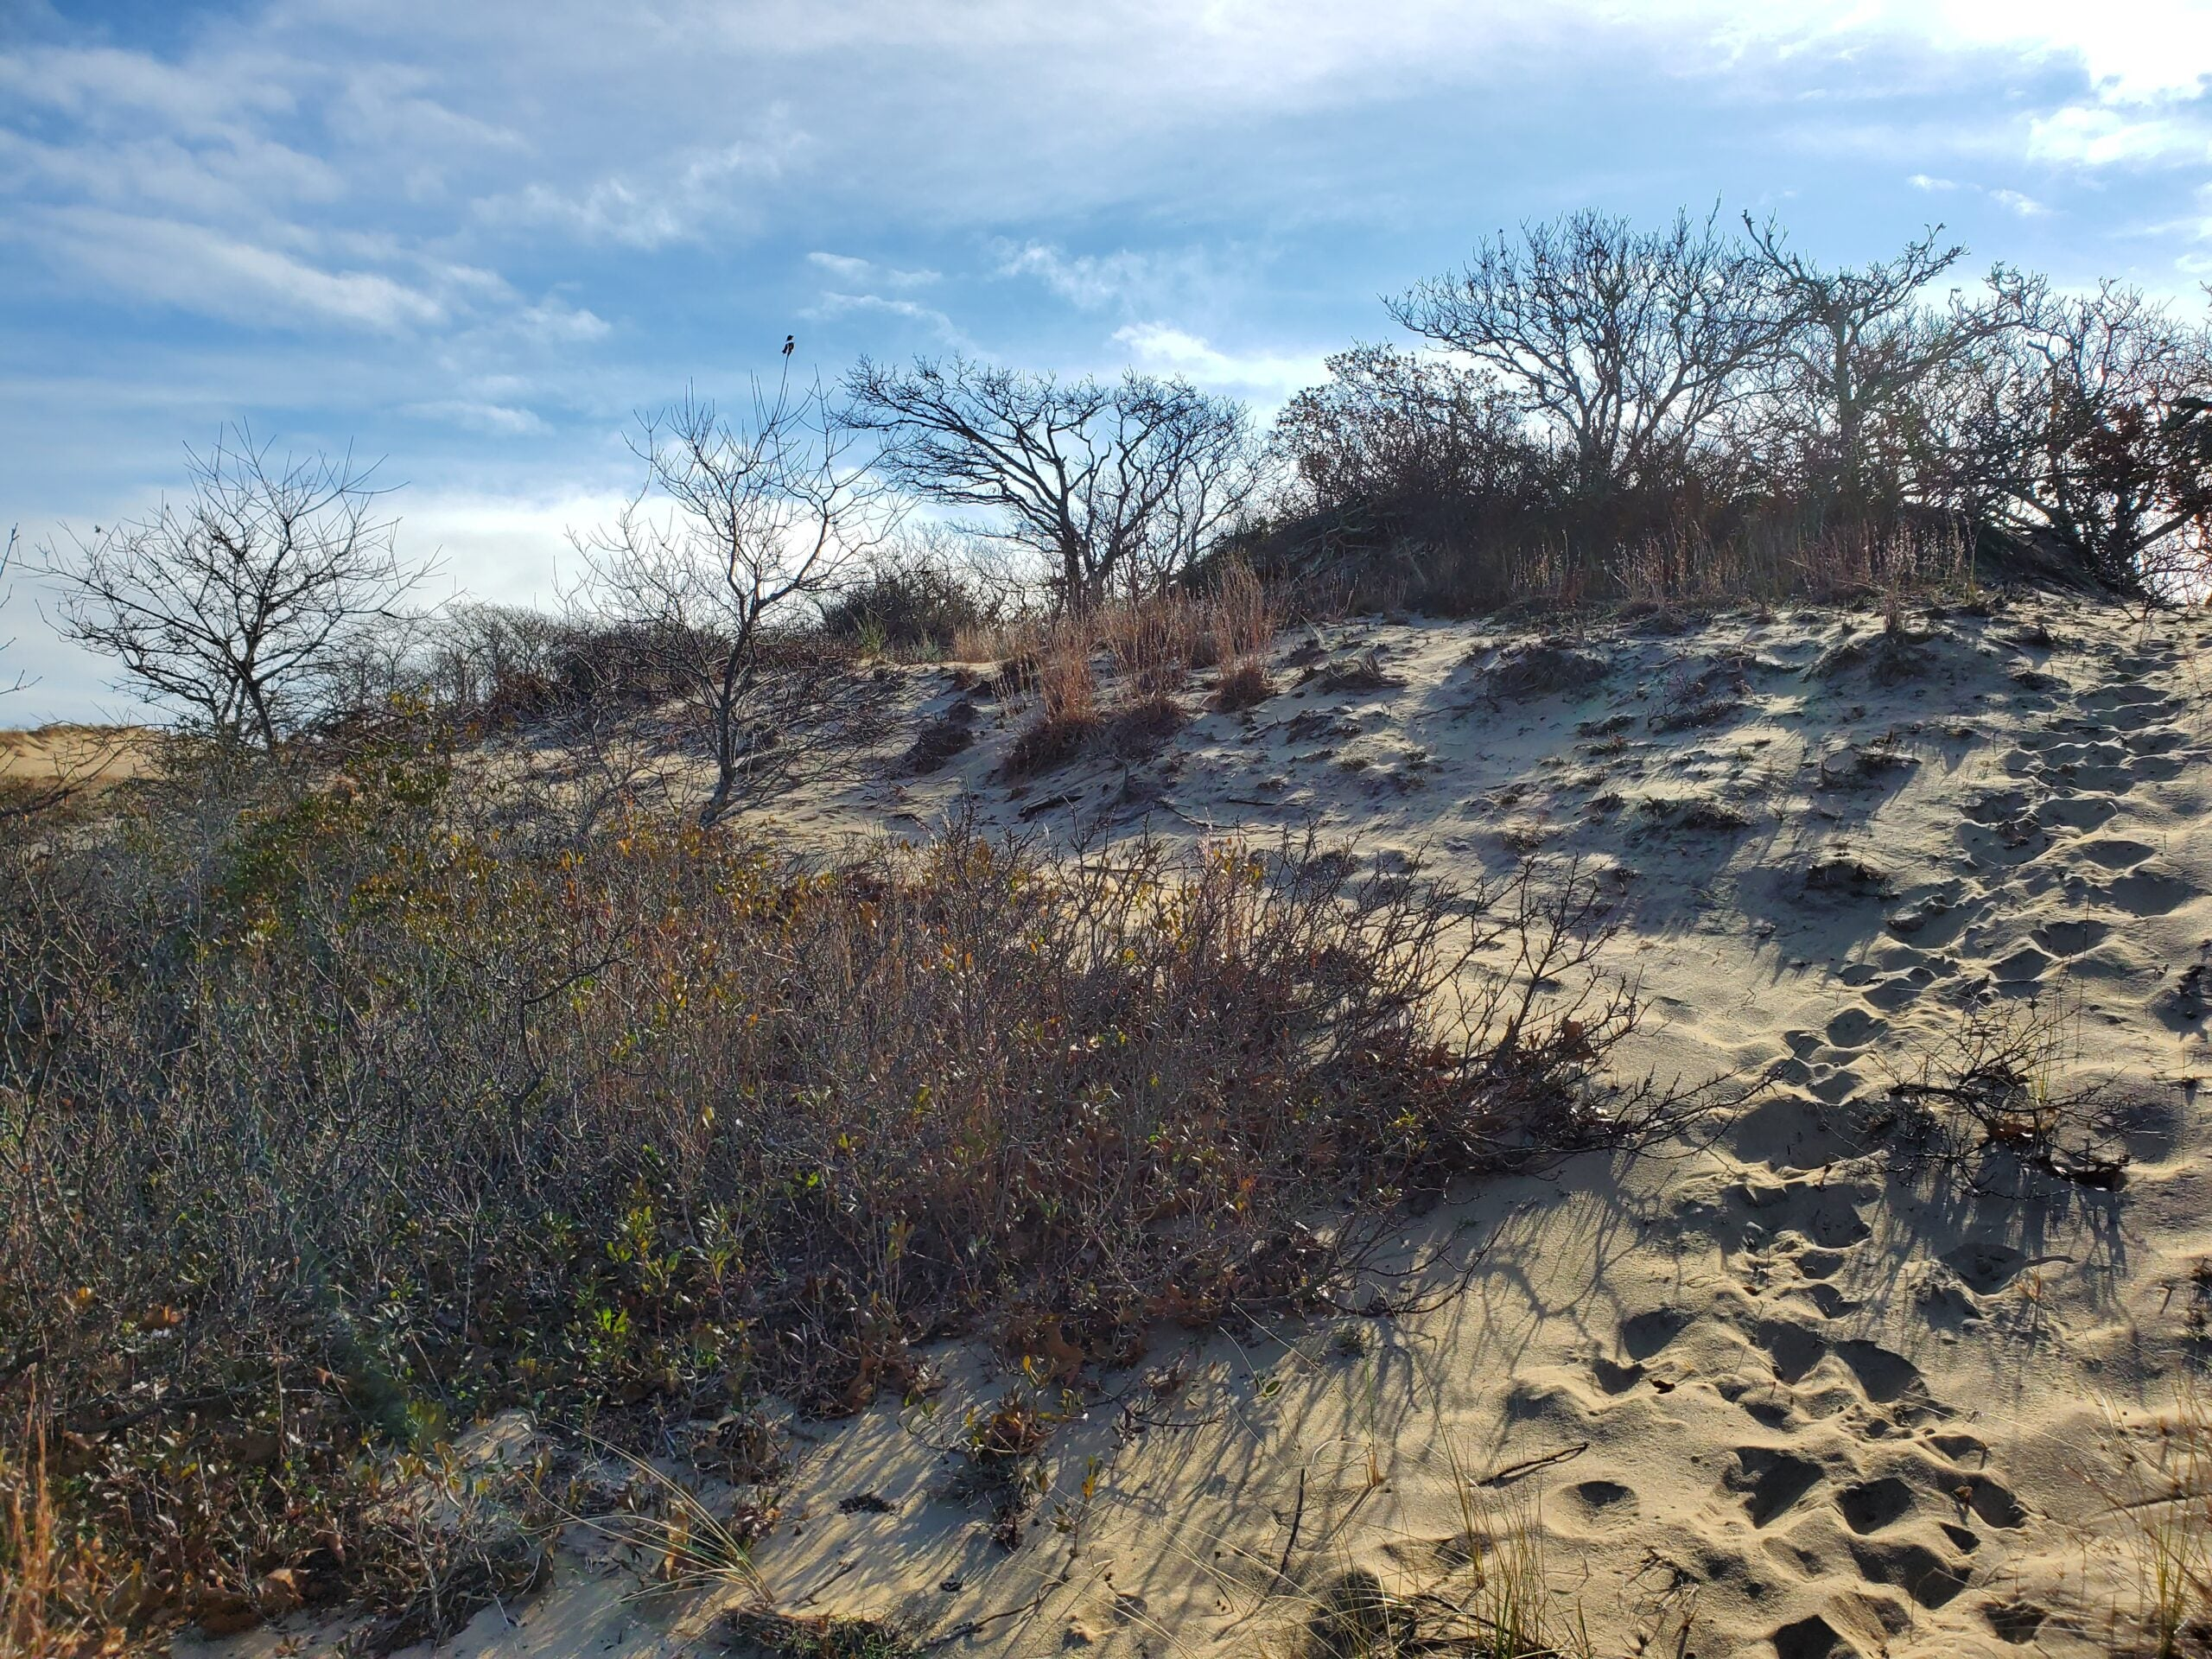 sand dunes and trees at hither hills state park on long island